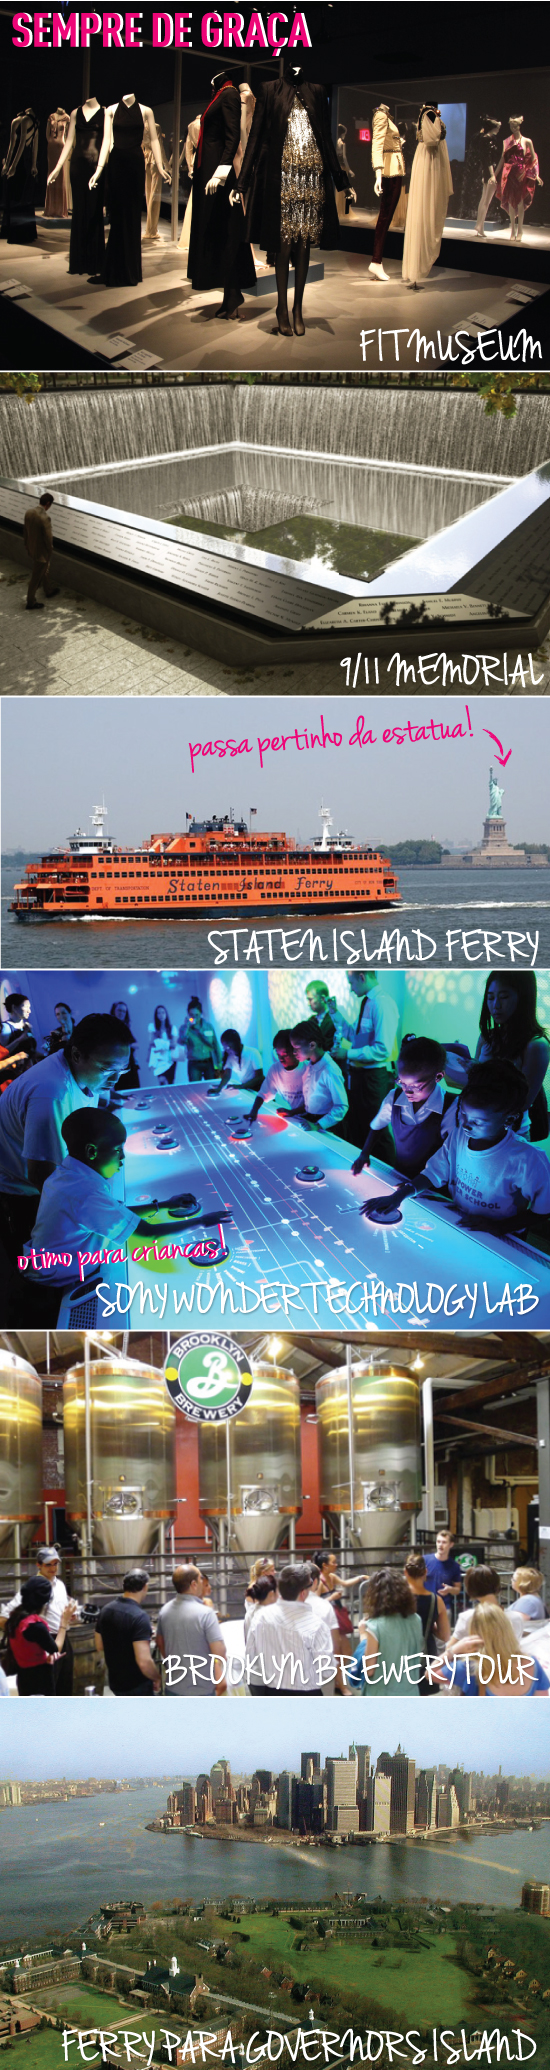 programas-de-graca-em-ny-gratuitos-museu-atracoes-fit-fashion-institute-of-technology-estatua-da-liberdade-staten-island-ferry-sony-wonder-lab-governors-island-ferry-brooklyn-brewery-tour-cerveja-fabrica-memorial-9/11-wtc-world-trade-center